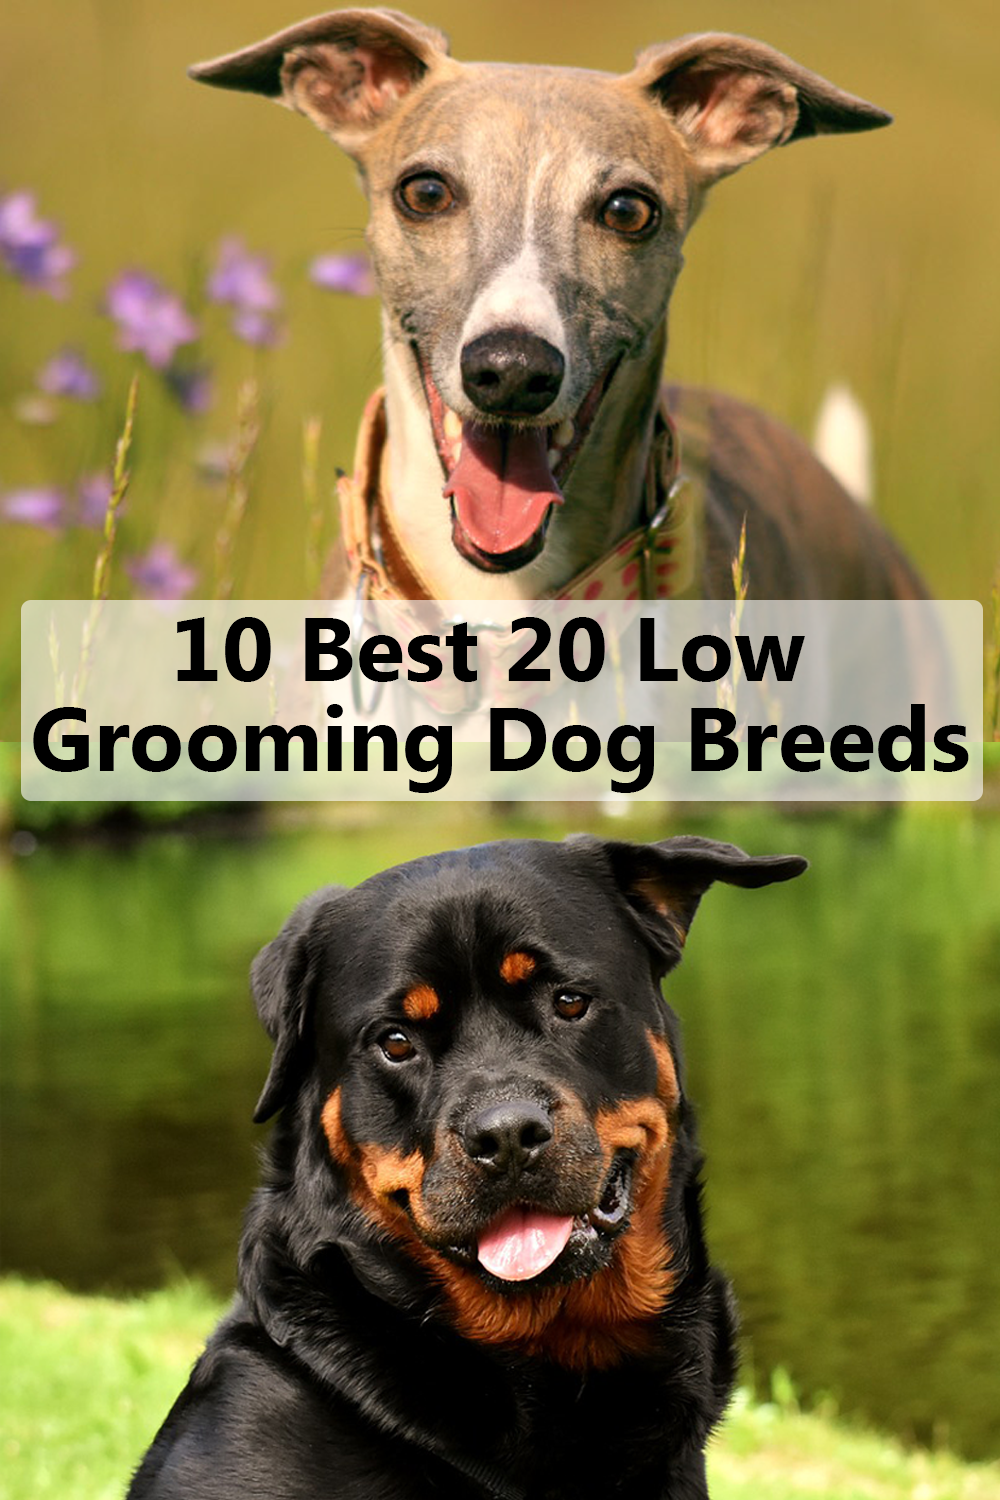 10 Best Low Grooming Dog Breeds Dog Breeds Short Haired Dogs Low Shedding Dog Breeds